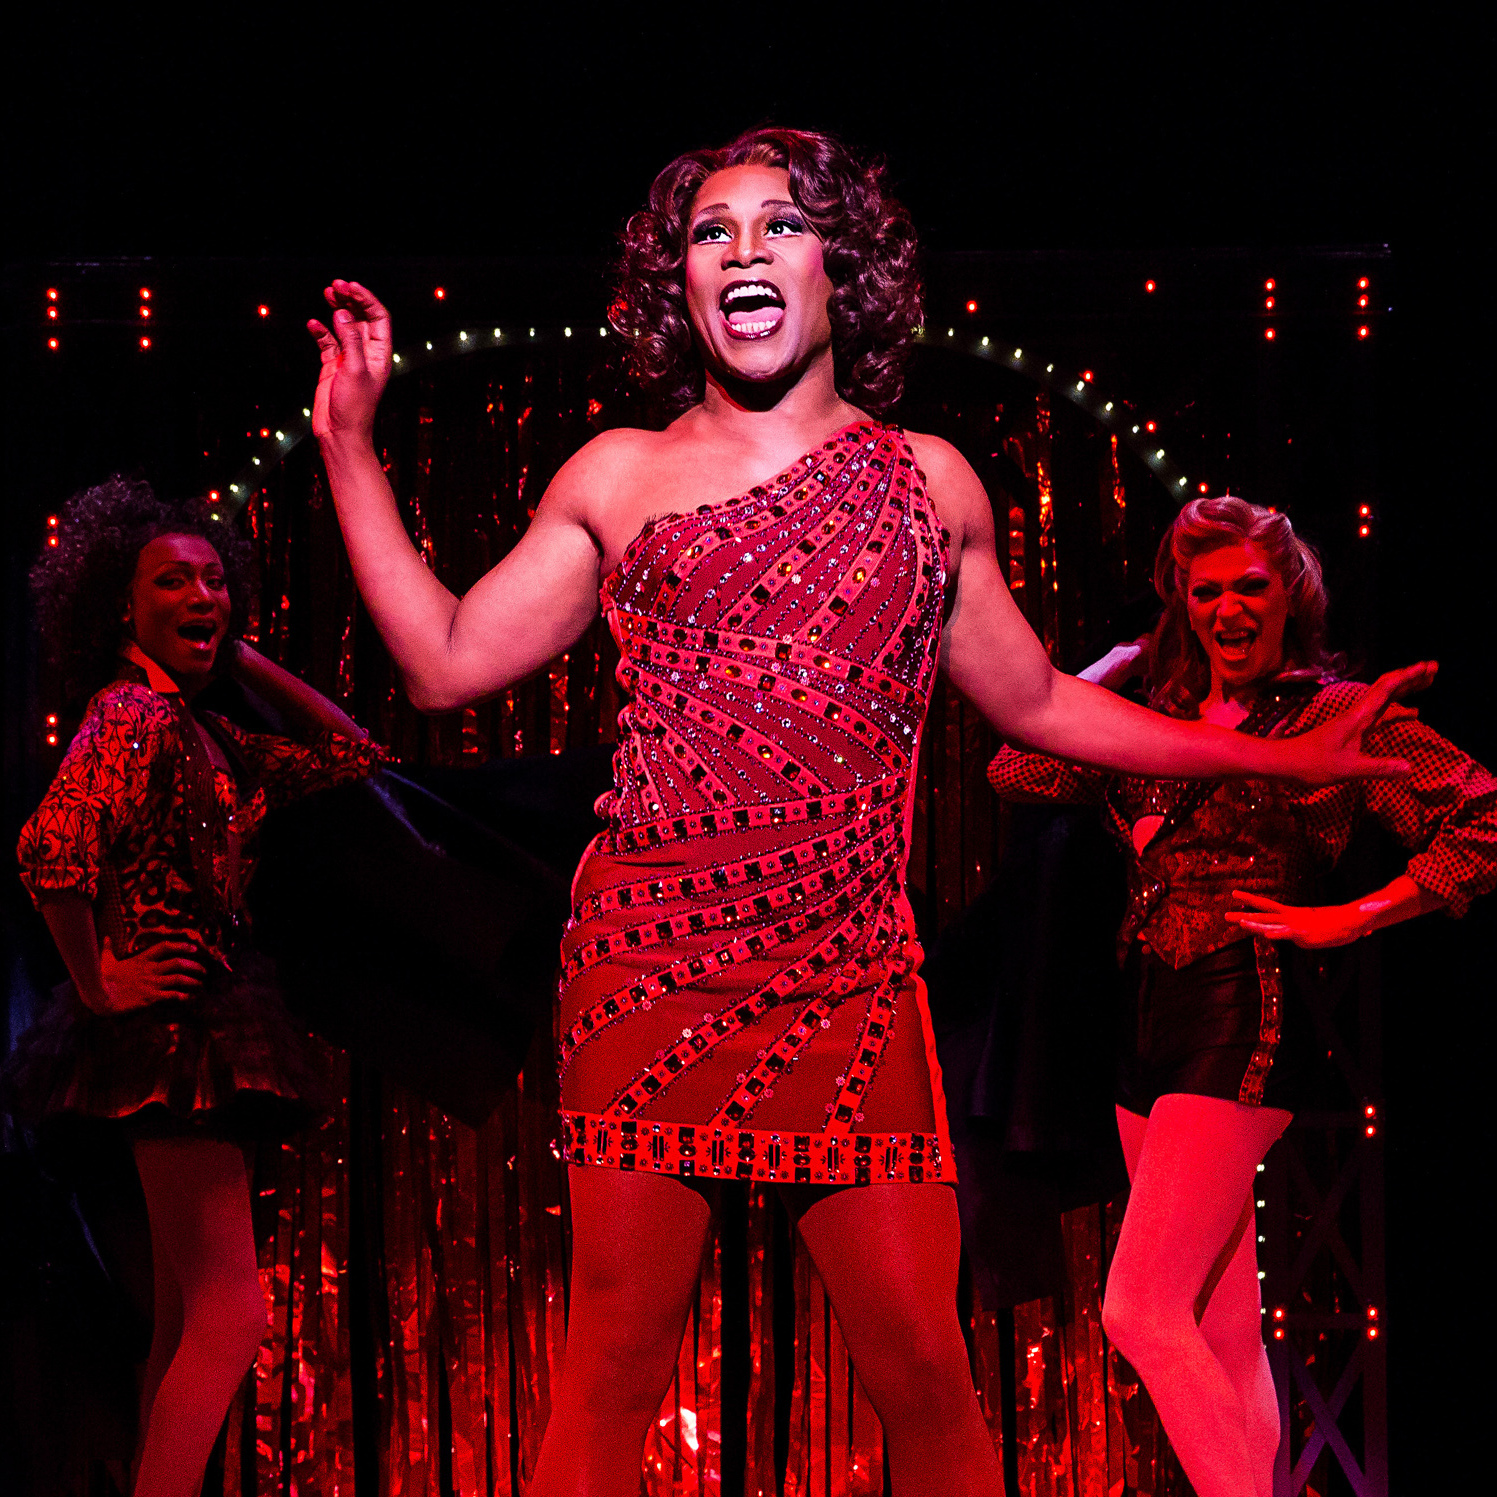 His character may be a flashy dresser, but Porter says Kinky Boots is just a simple story about two men trying to understand themselves -- and each other -- a little better.